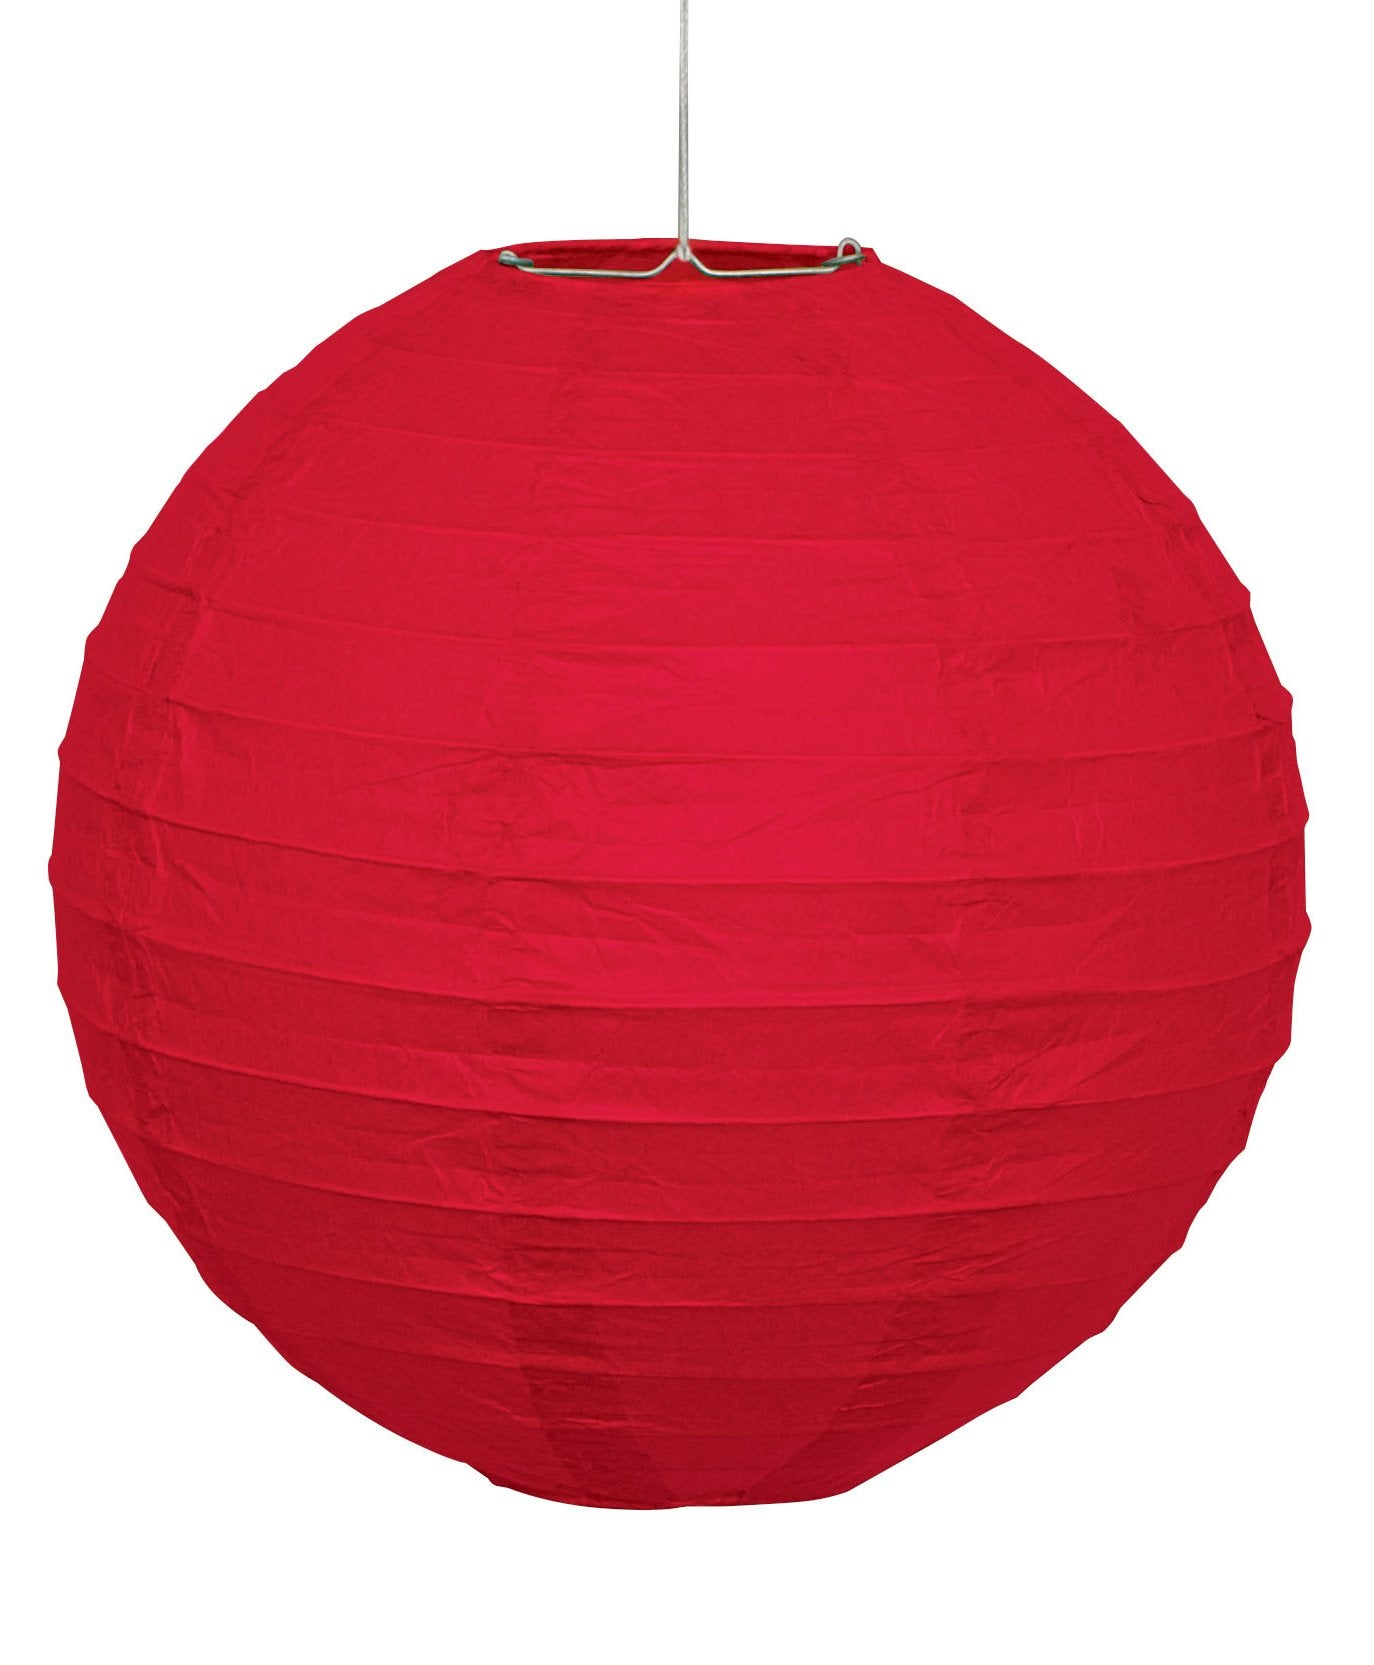 red paper lanterns for sale online in Dubai